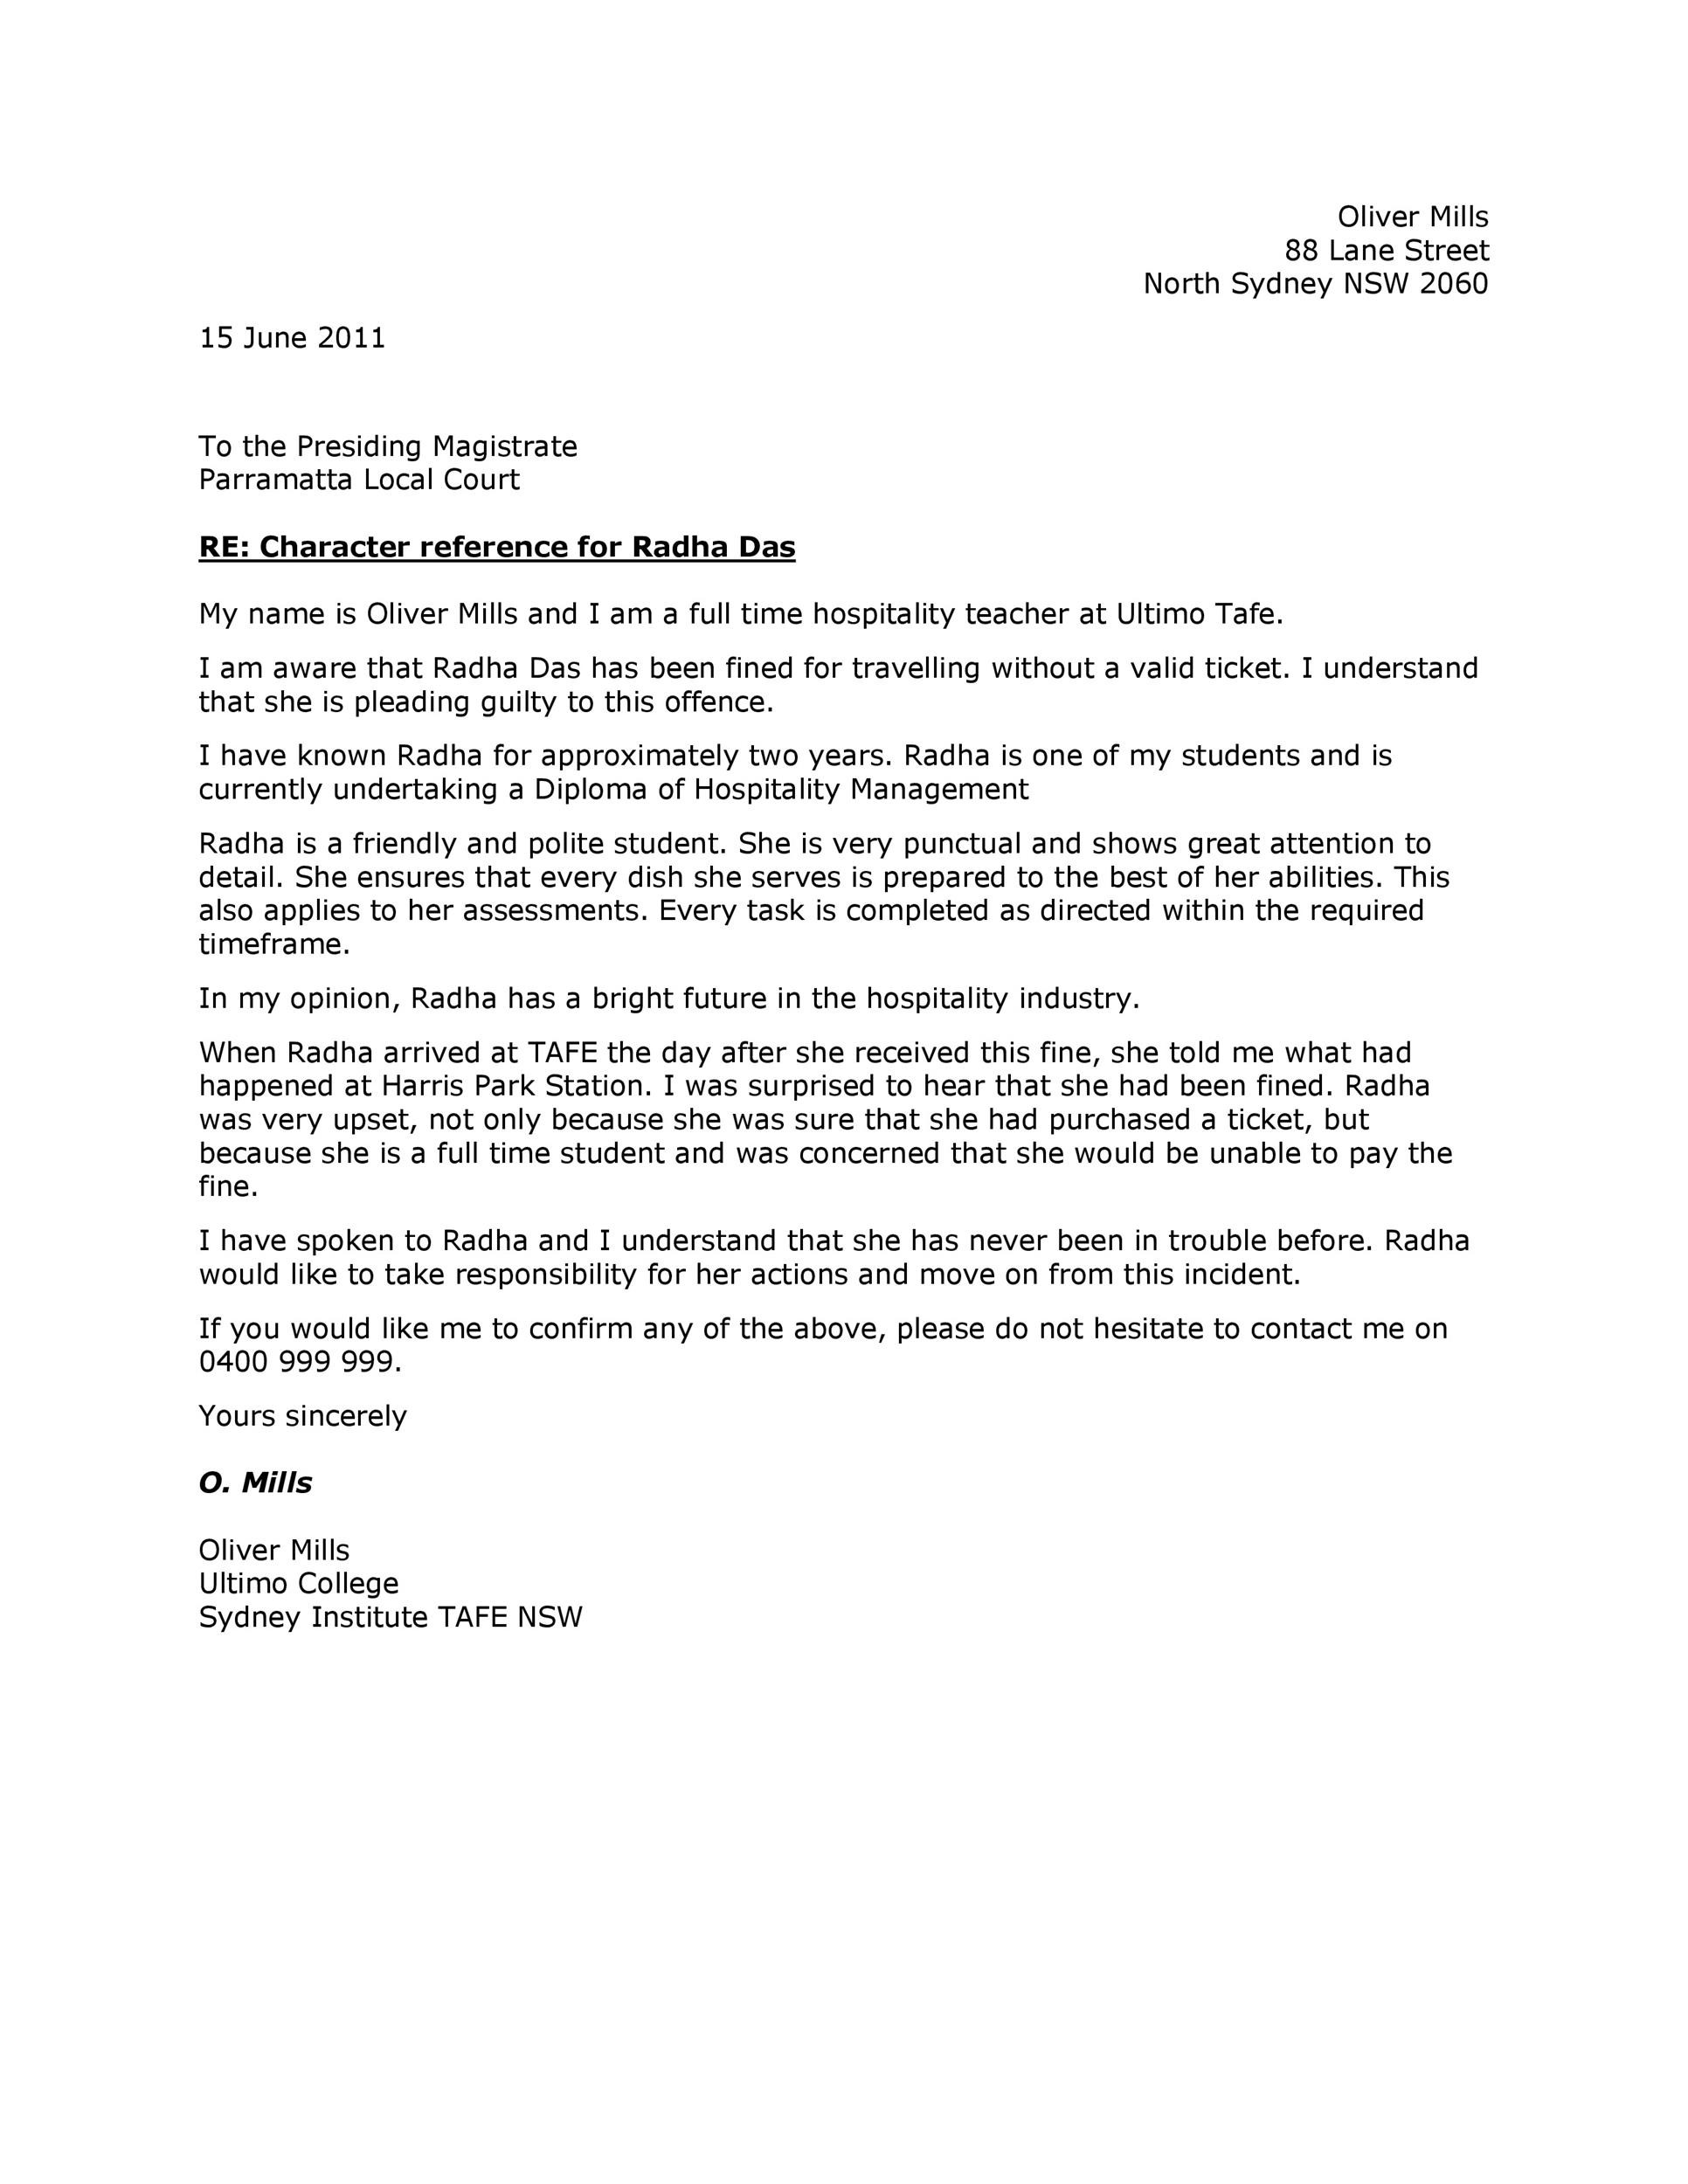 Free character witness letter 12